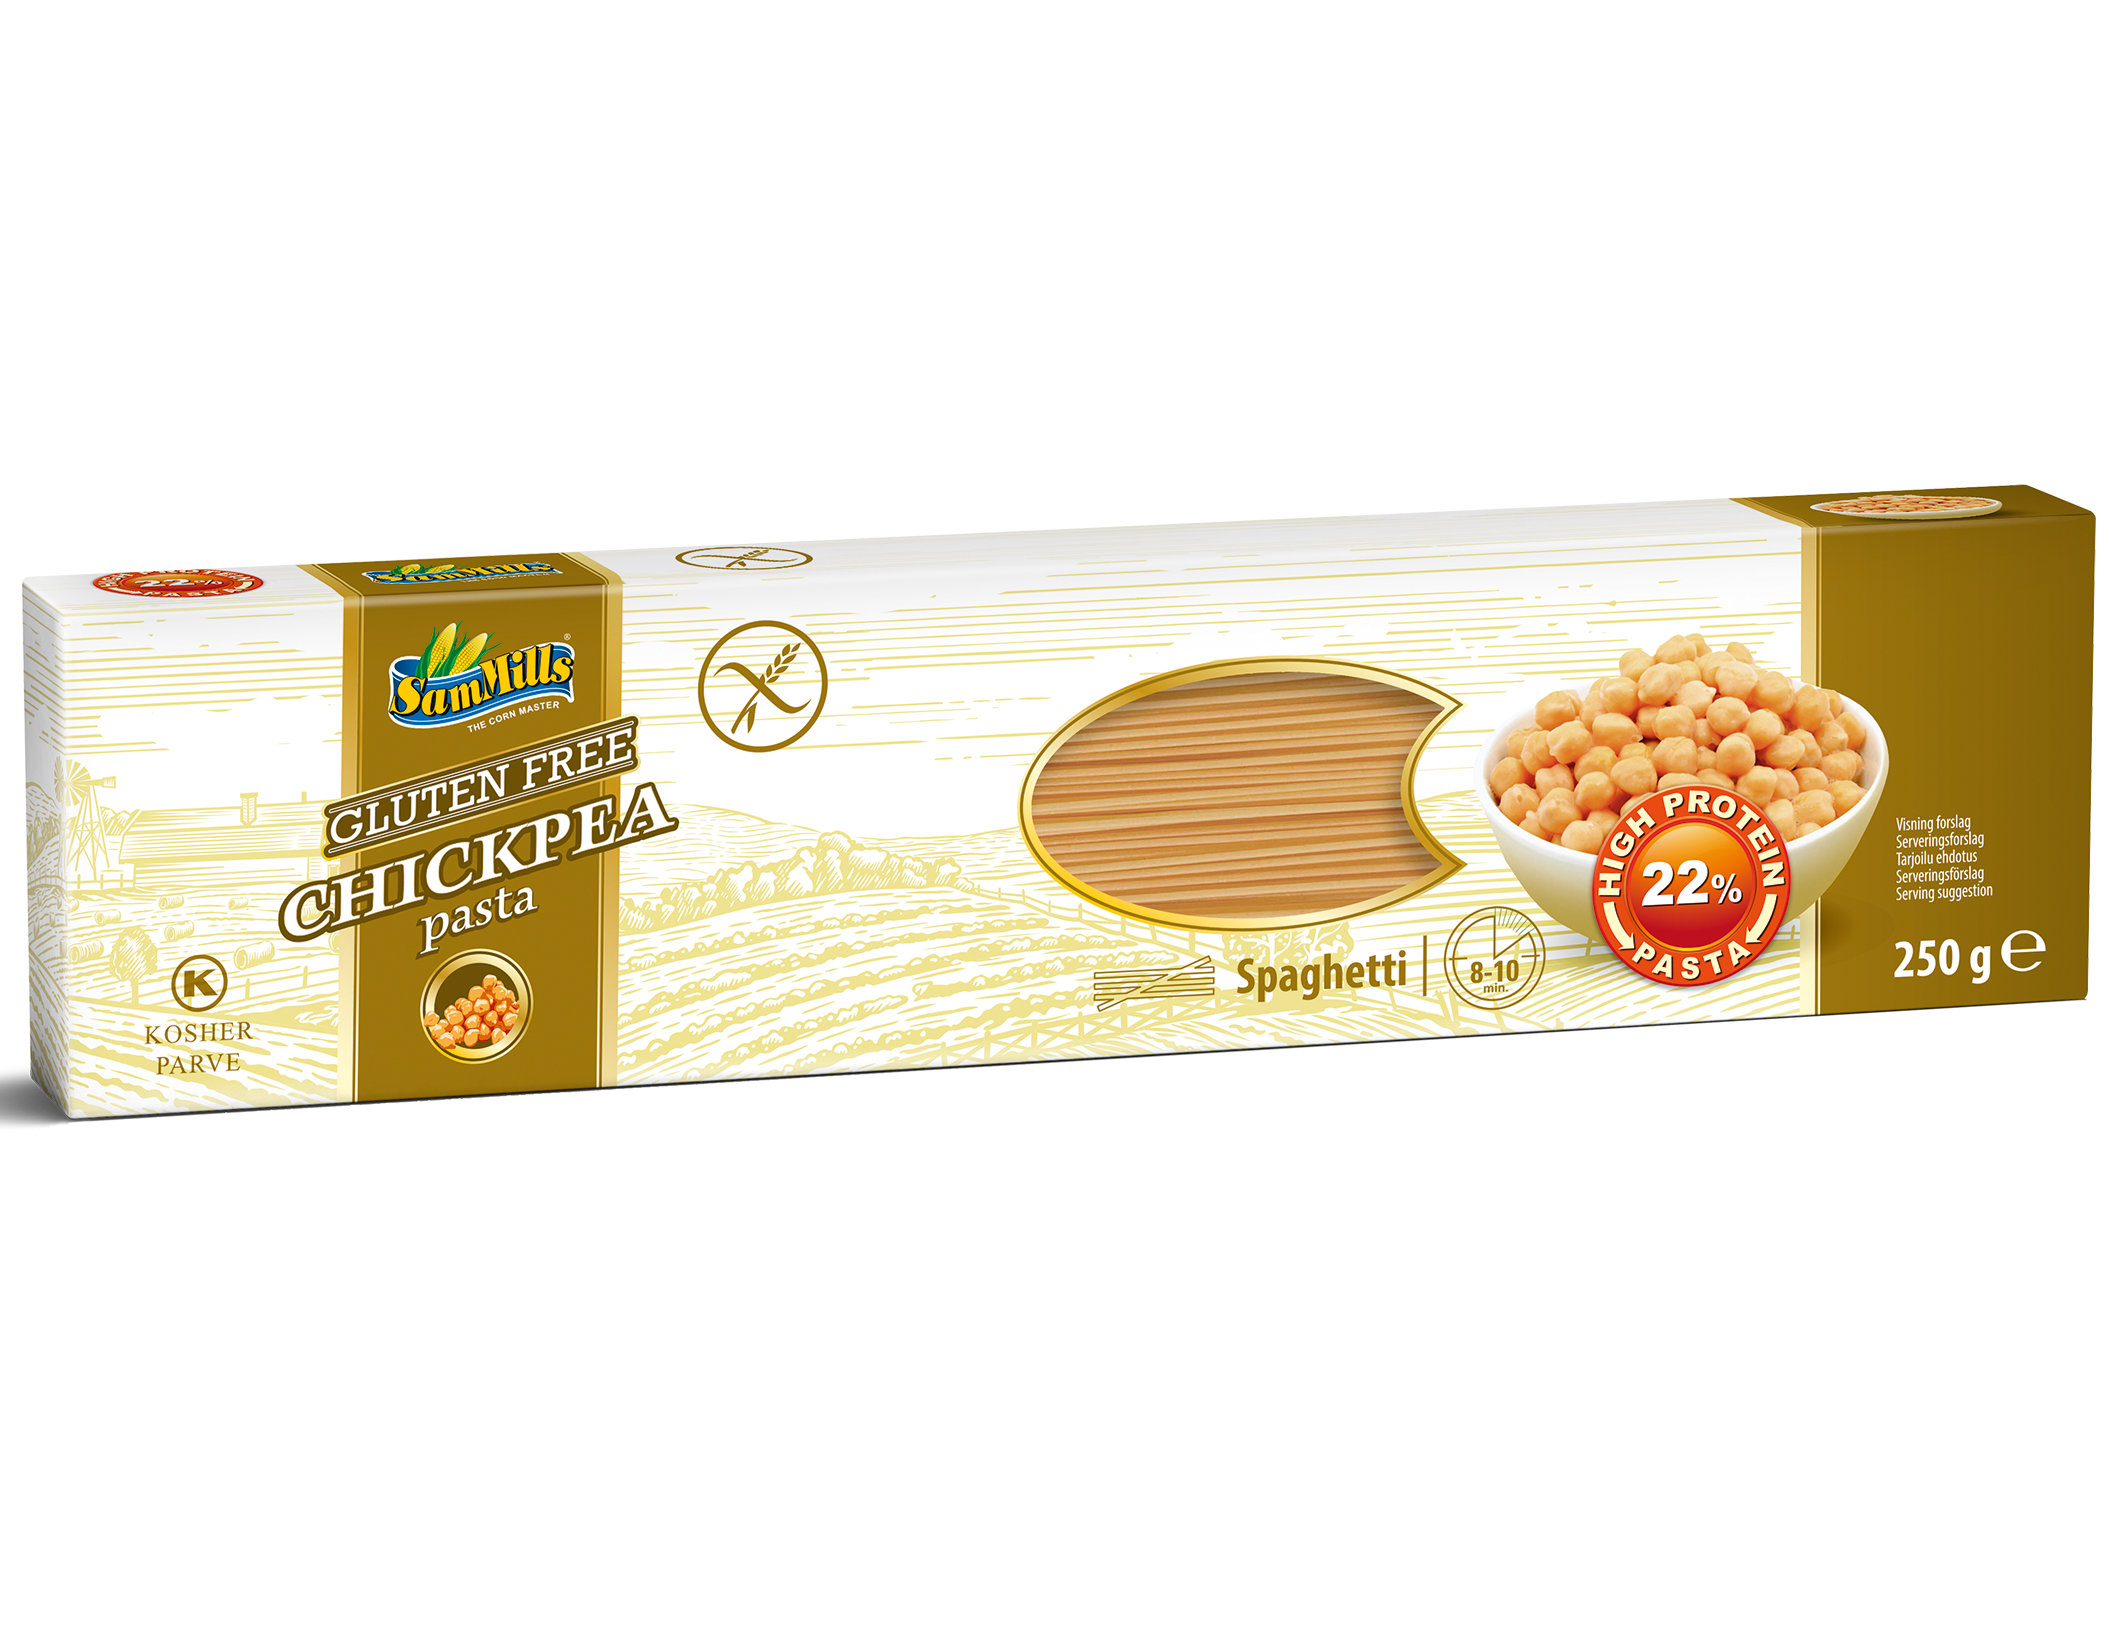 3D ChickPea Spaghetti.Scan  Products Line